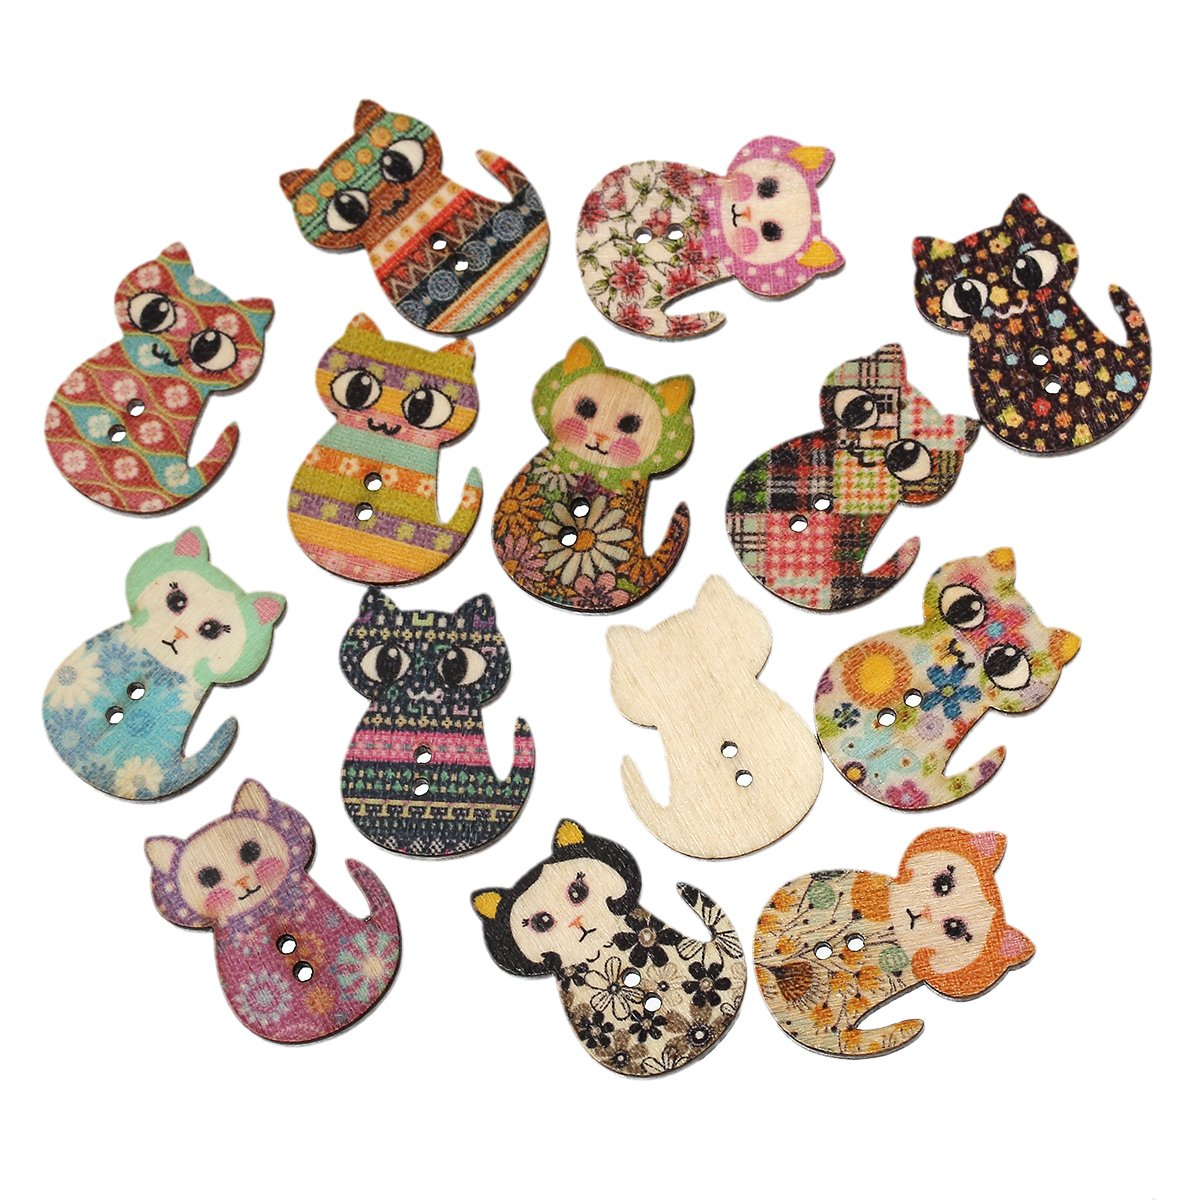 The Bead and Button Box - 20 Assorted Novelty Wooden Cat Buttons 3cm x 23cm Mixed Colour Assortment. Ideal for sewing, scrapbook, knitting, card making, embellishment, decoration and other Crafts